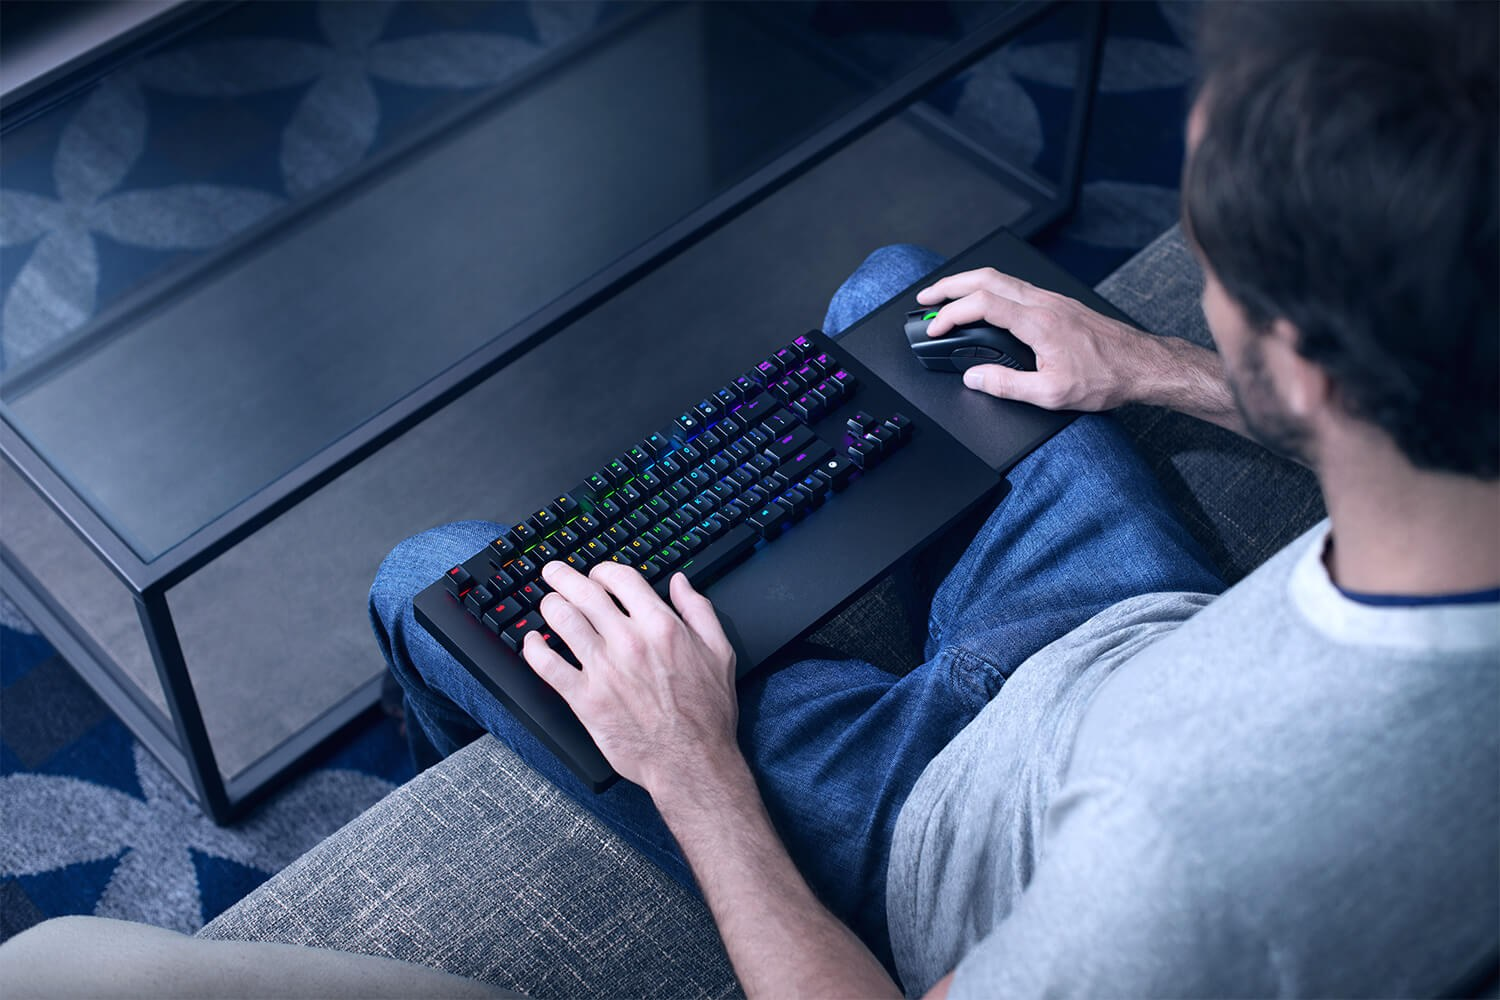 Razer unveils the first keyboard and mouse designed for Xbox One